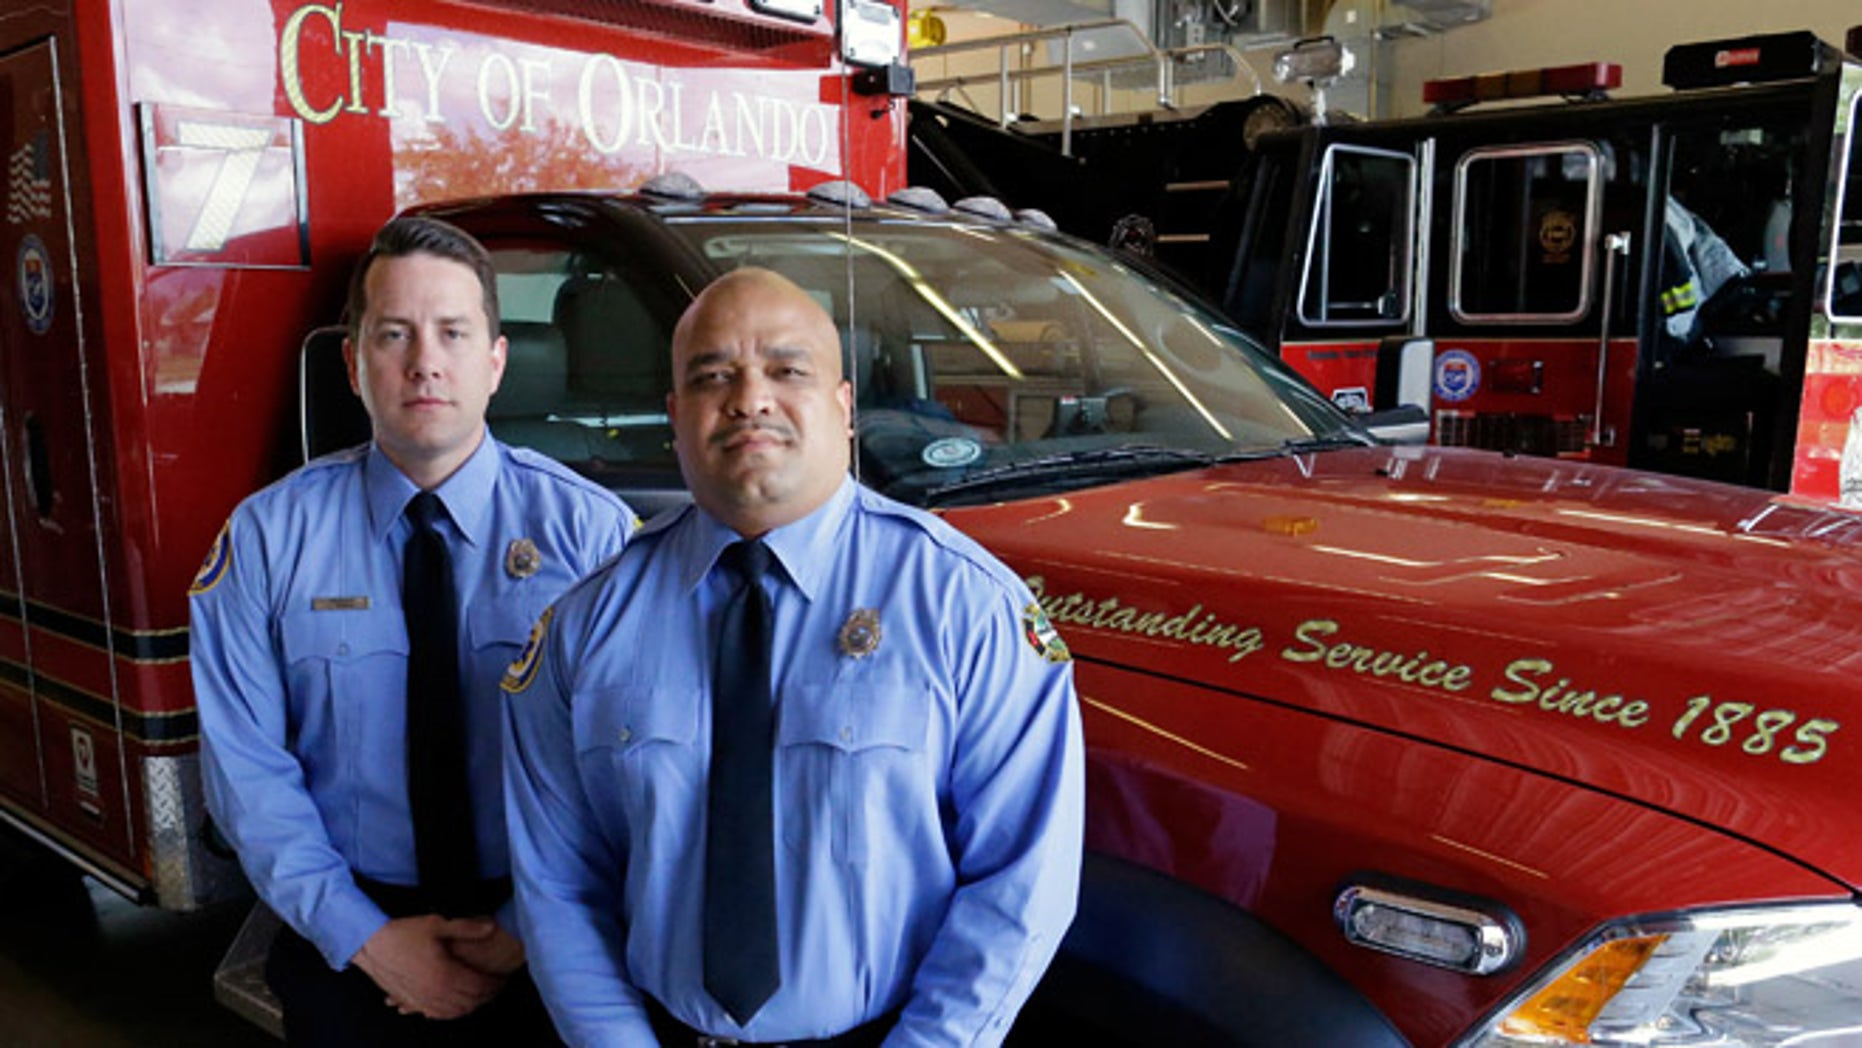 In this Thursday, June 30, 2016 photo, Josh Granada, left, and Carlos Tavarez the first paramedic-firefighters to respond to the Pulse nightclub shooting stand by their emergency vehicle at their fire station in Orlando, Fla. They made five trips with 13 victims to a hospital emergency room just a few blocks away the evening of the shooting.(AP Photo/John Raoux)